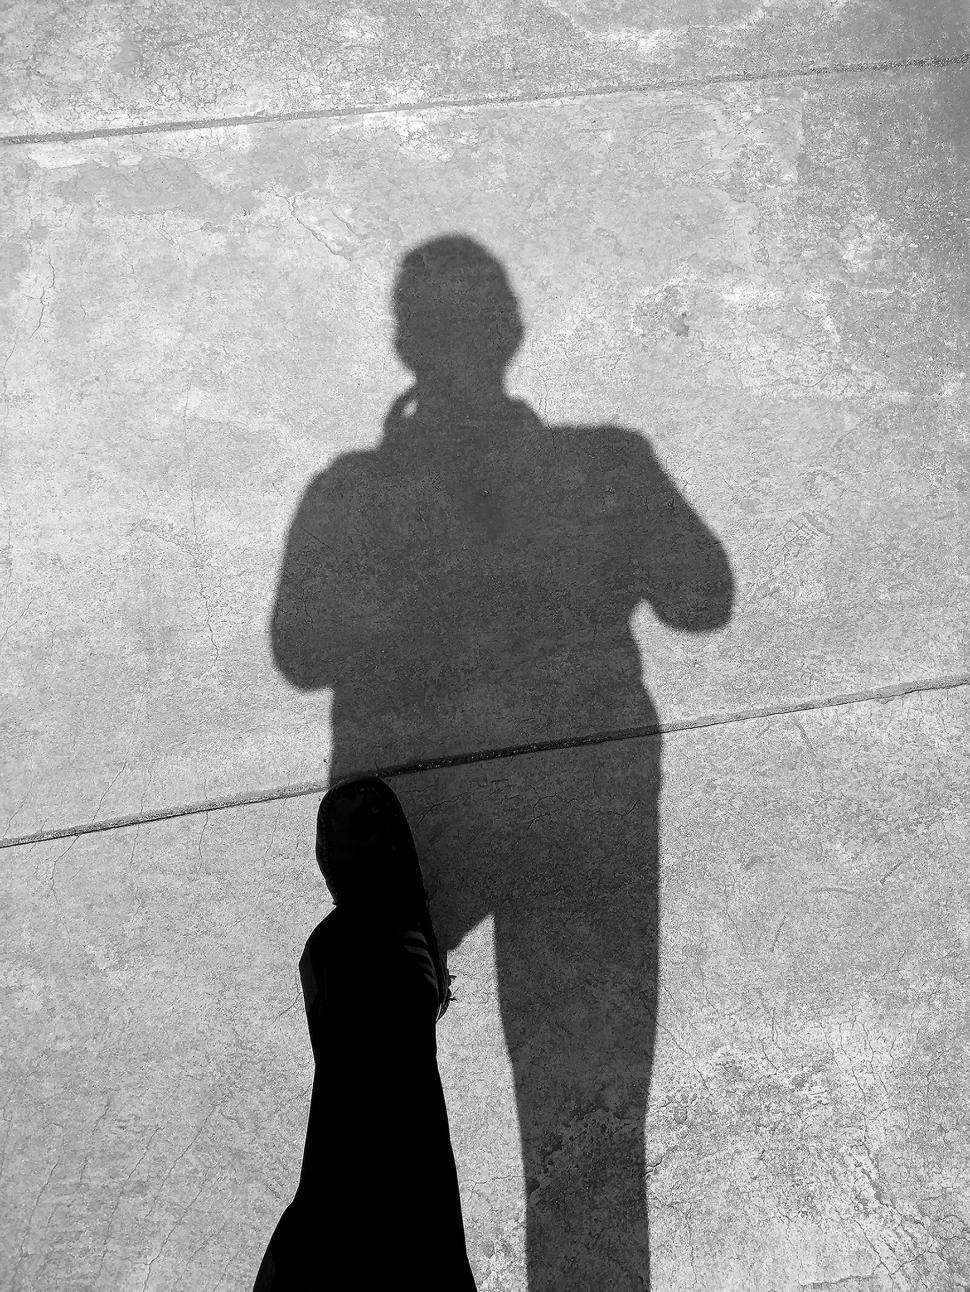 Download Free Stock HD Photo of Shadow of a man  Online